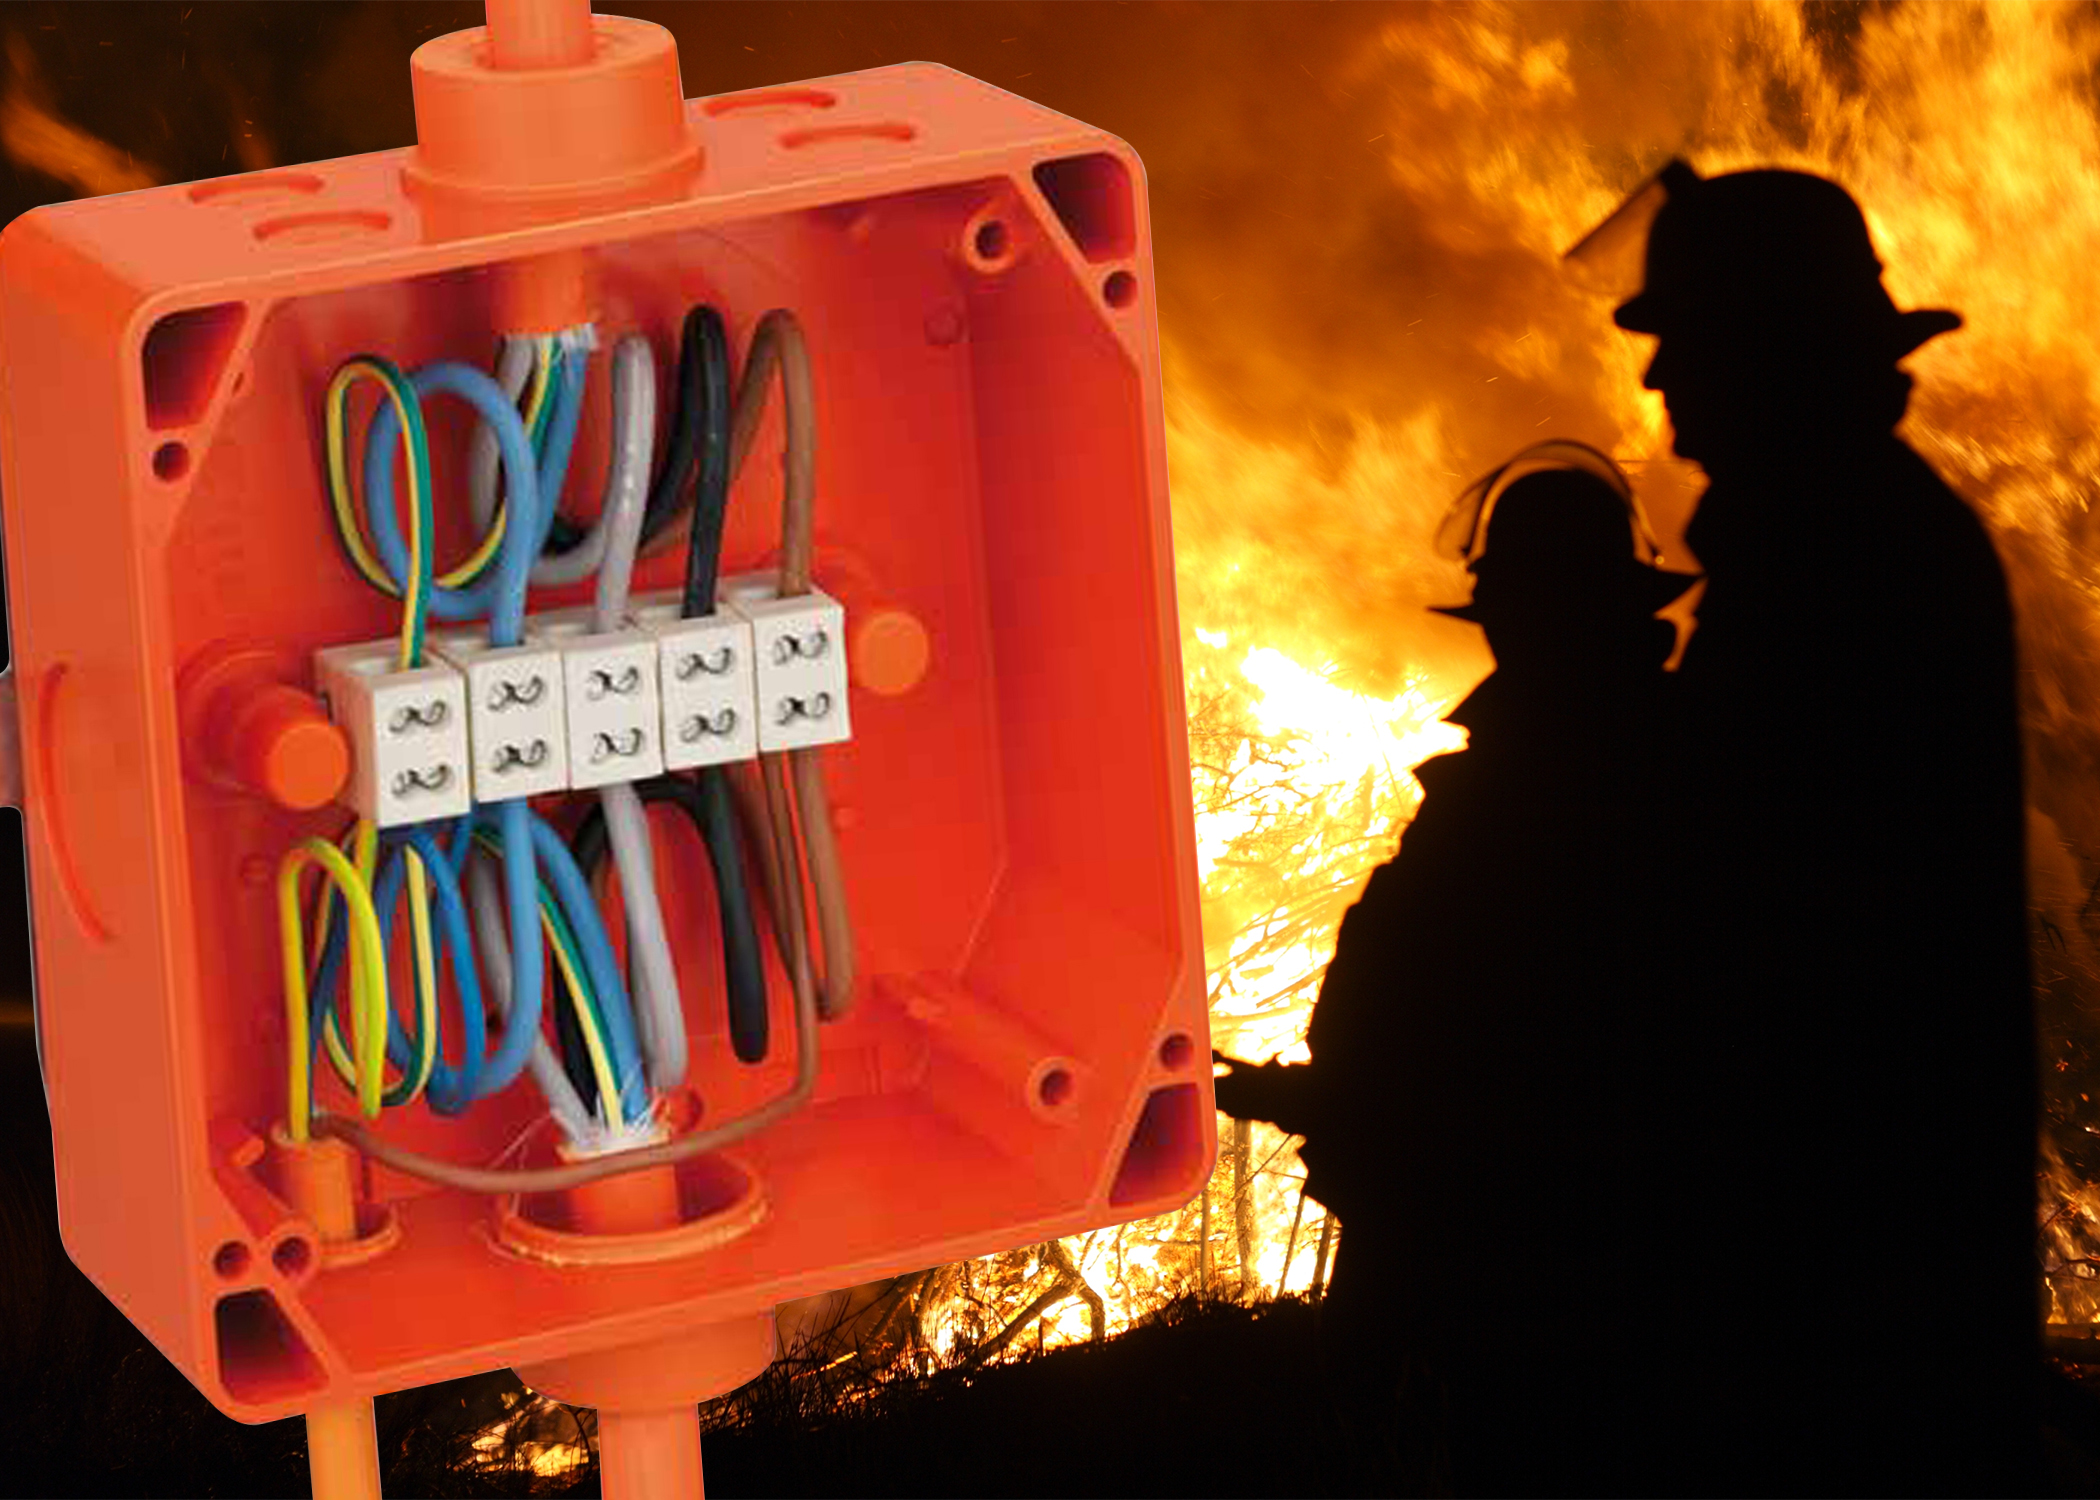 Do you know how to specify enclosures that are compliant with fire safety regulations?